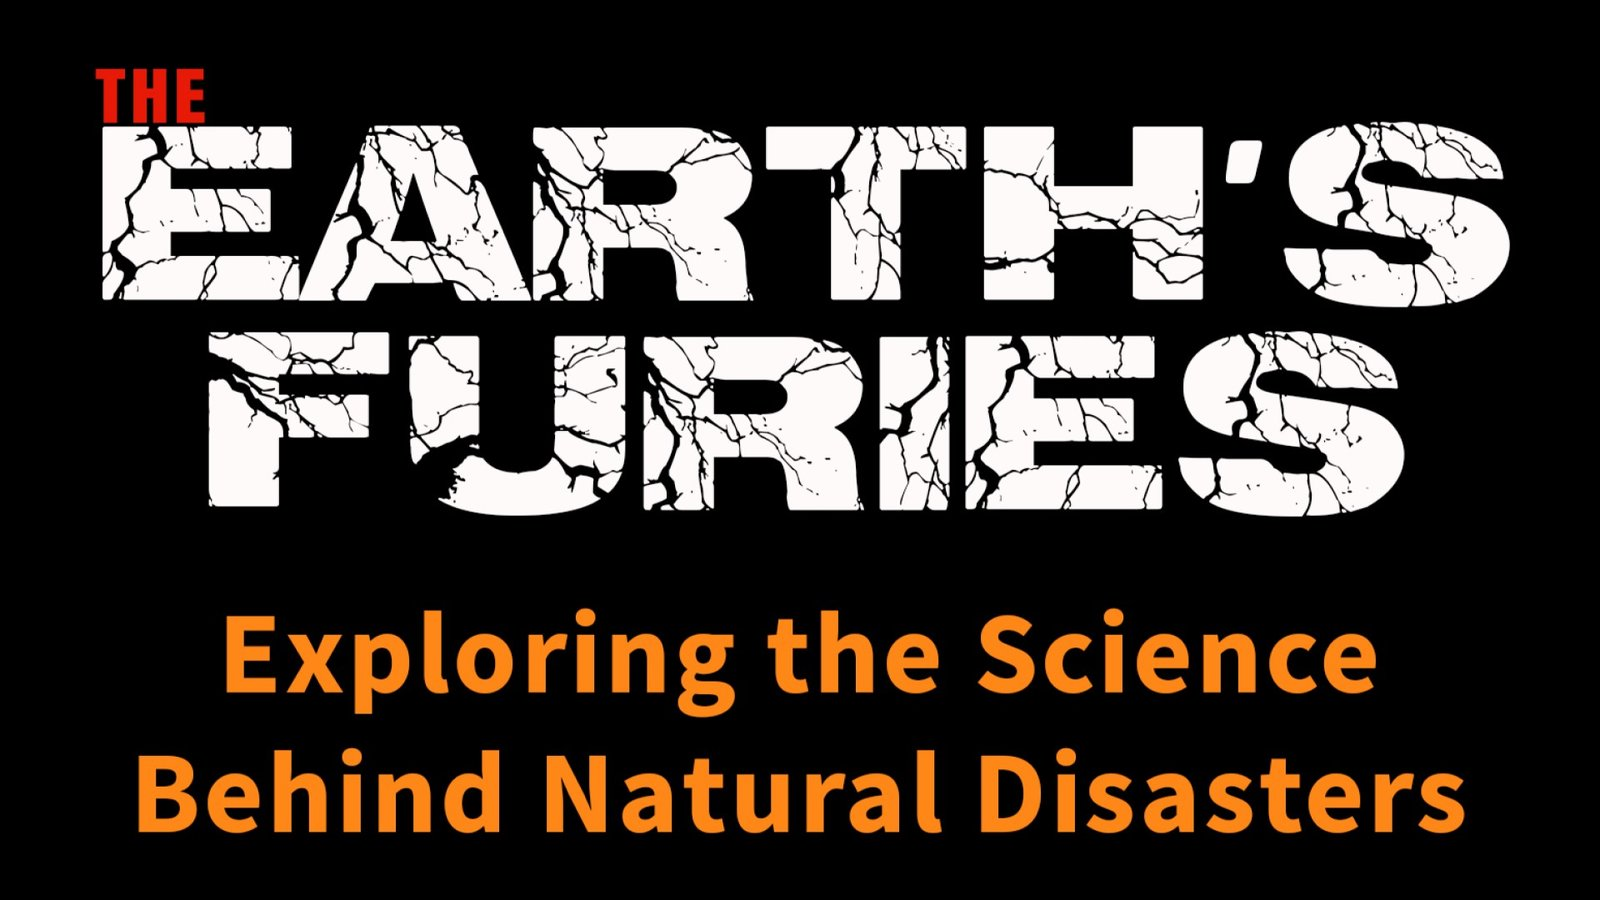 The Earth's Furies - Series 2 - Investigating Natural Disasters